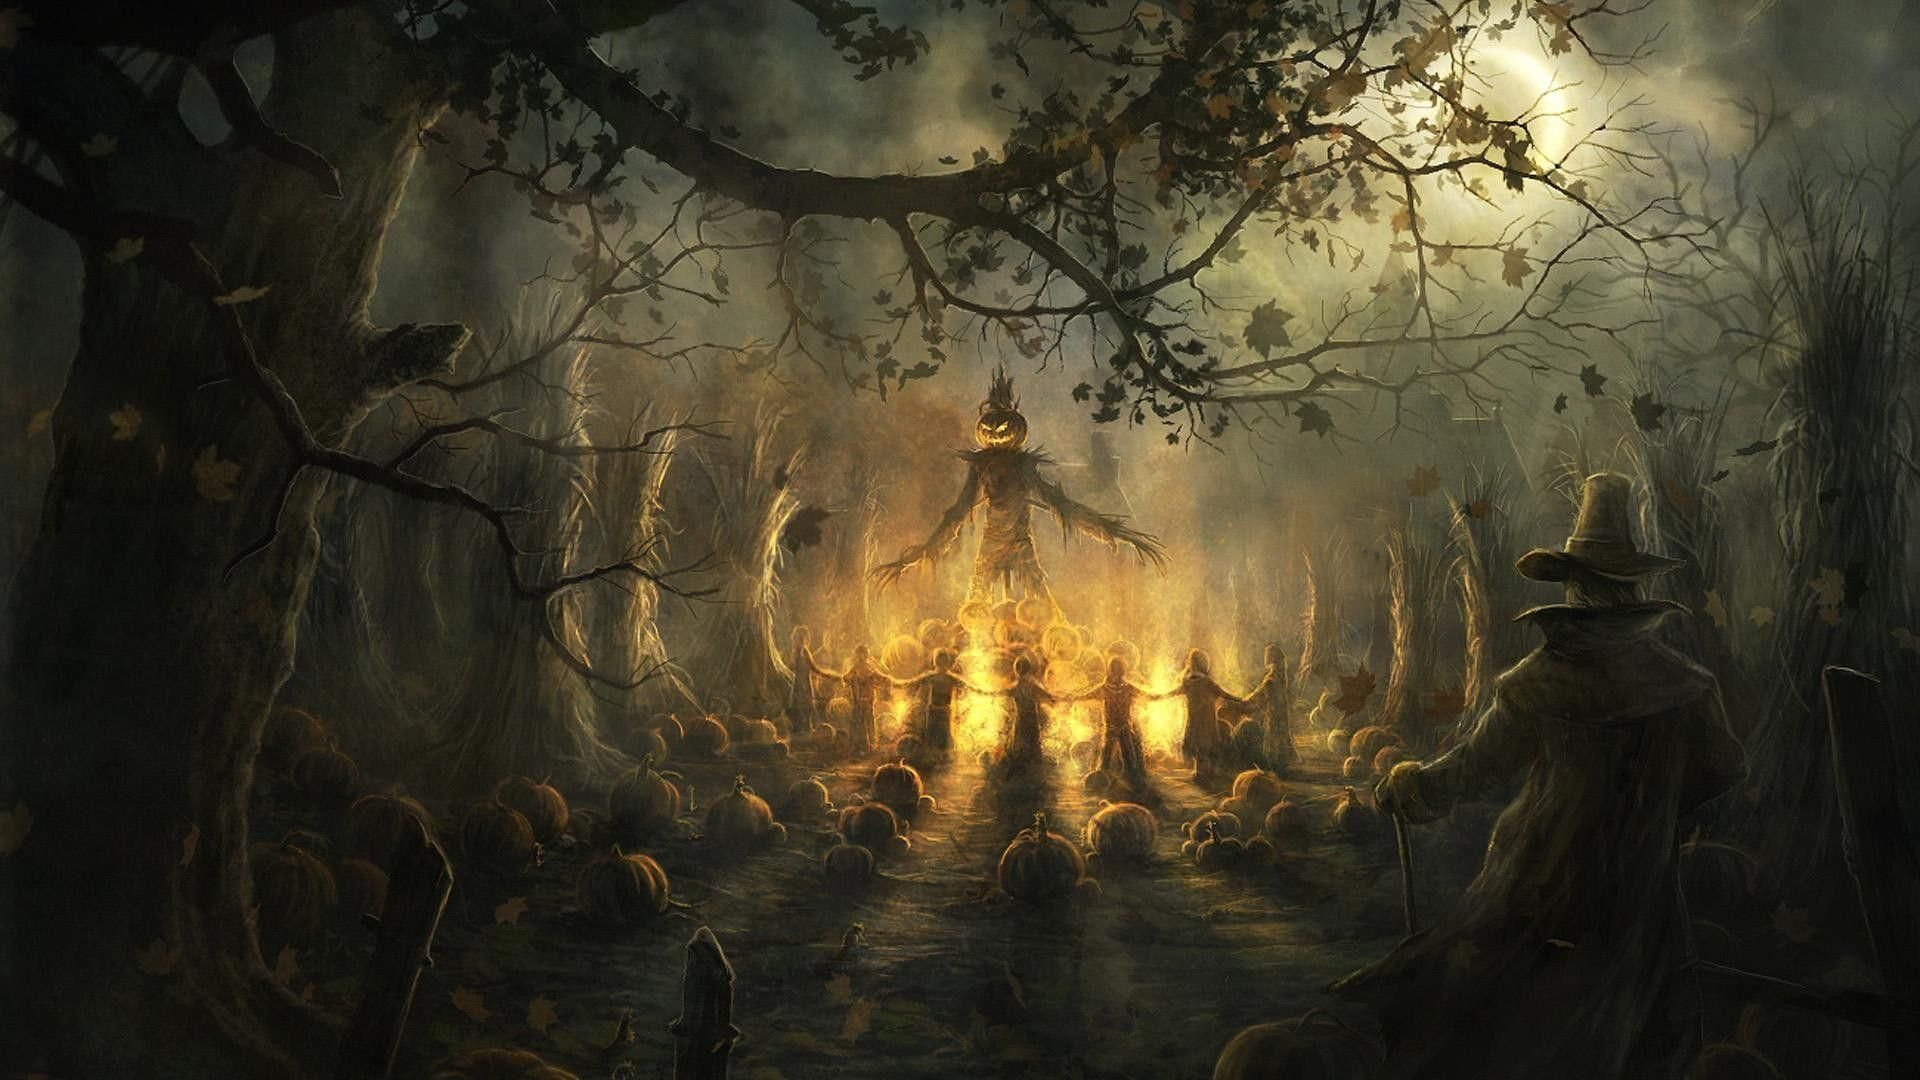 Halloween Hd Wallpapers 1080p Hd Wallpapers Inn Halloween Desktop Wallpaper Halloween Images Halloween Backgrounds